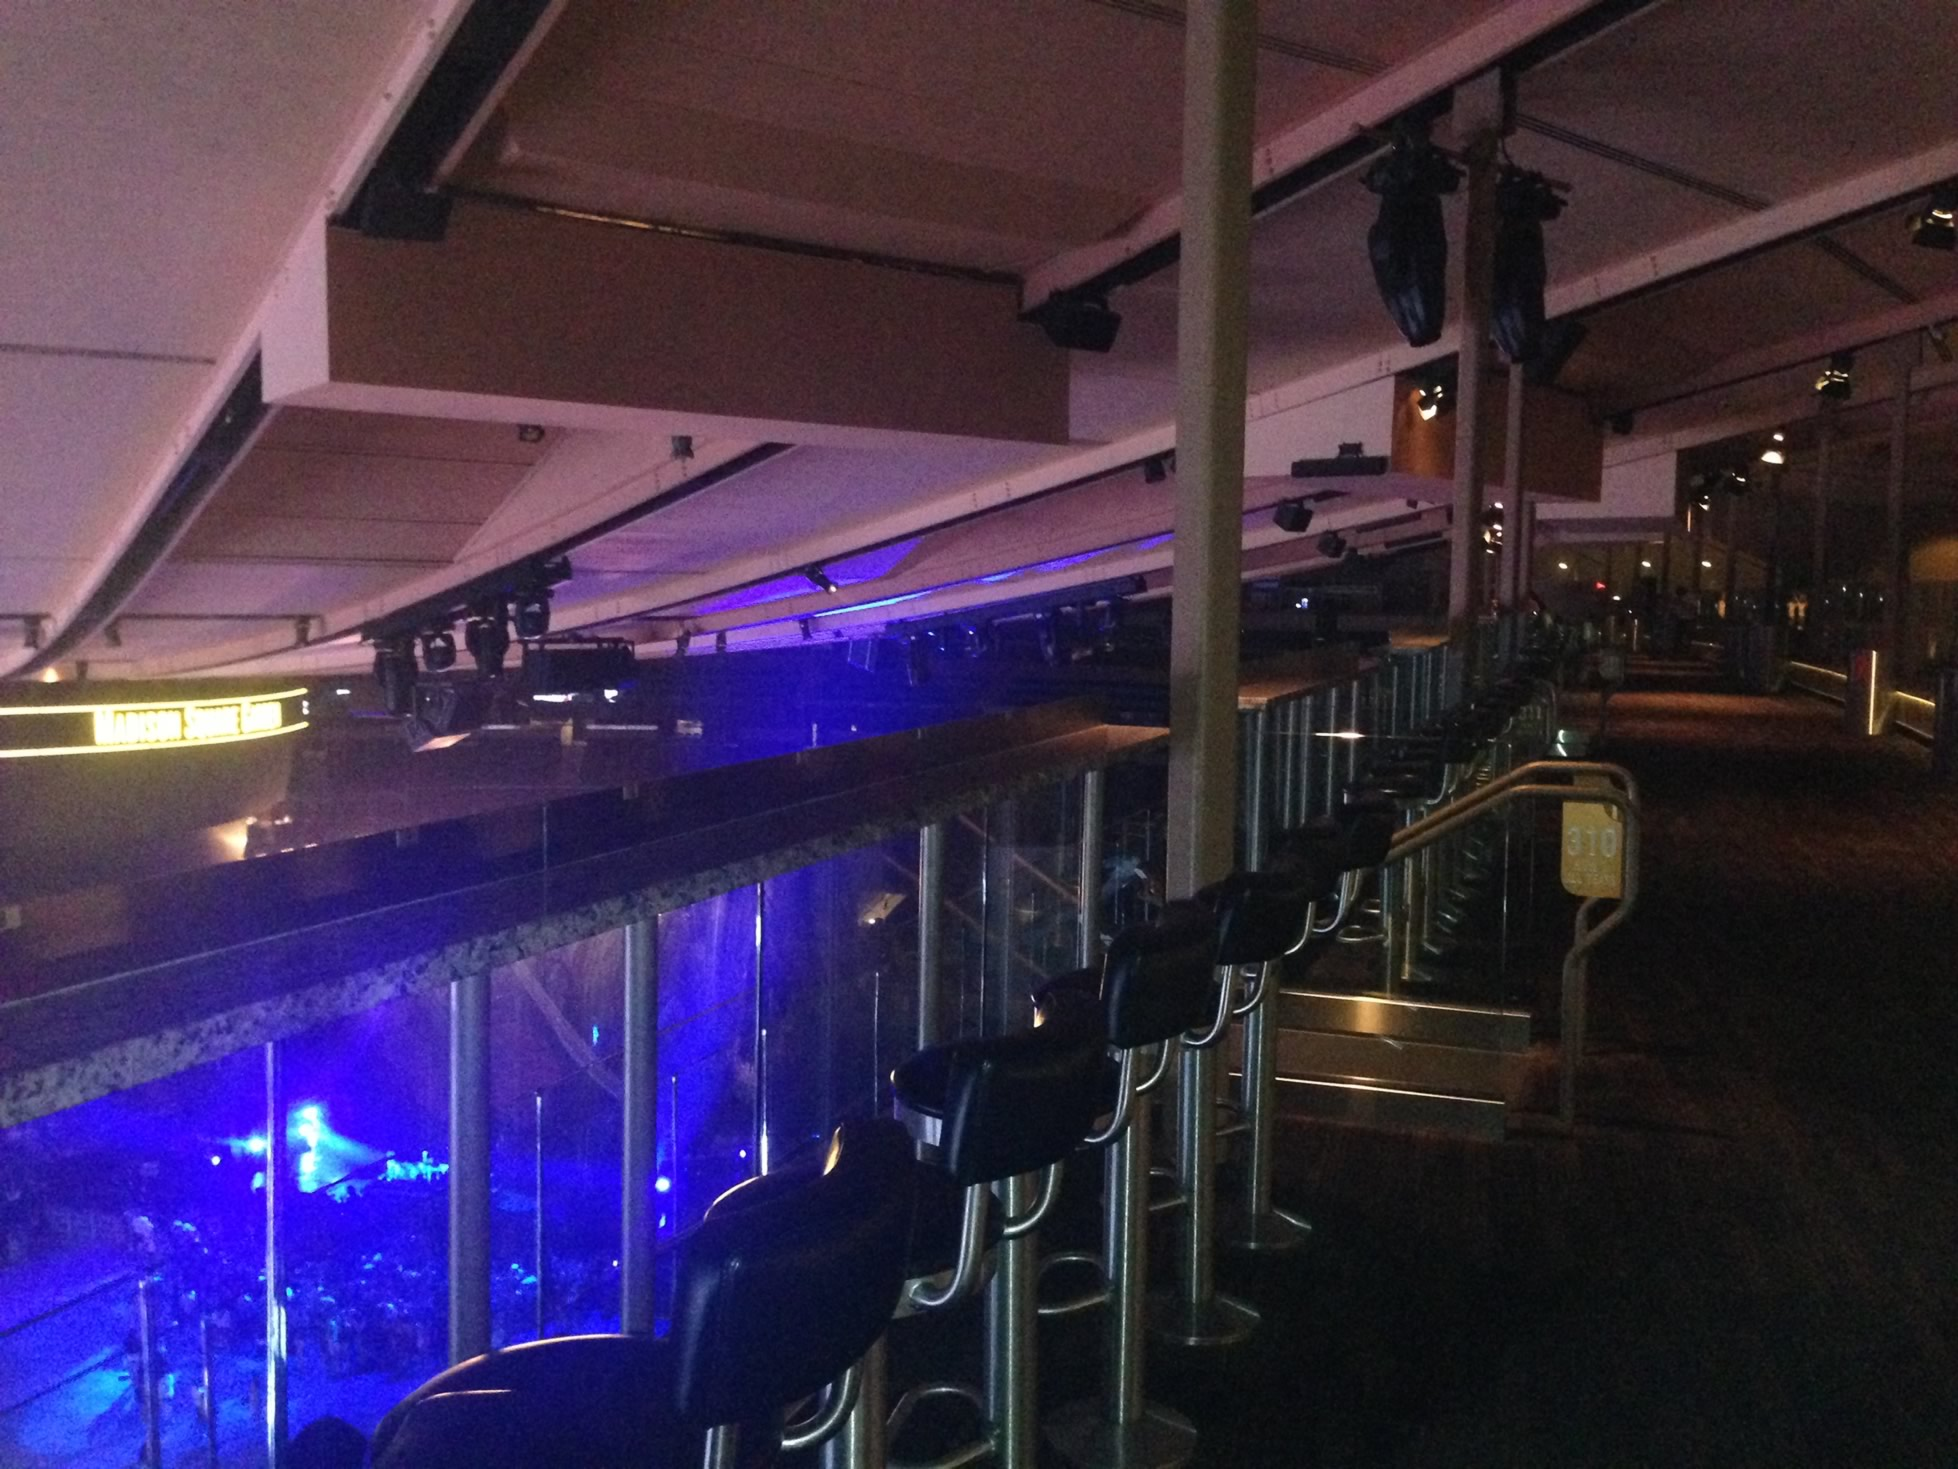 Madison Square Garden Section 313 Concert Seating